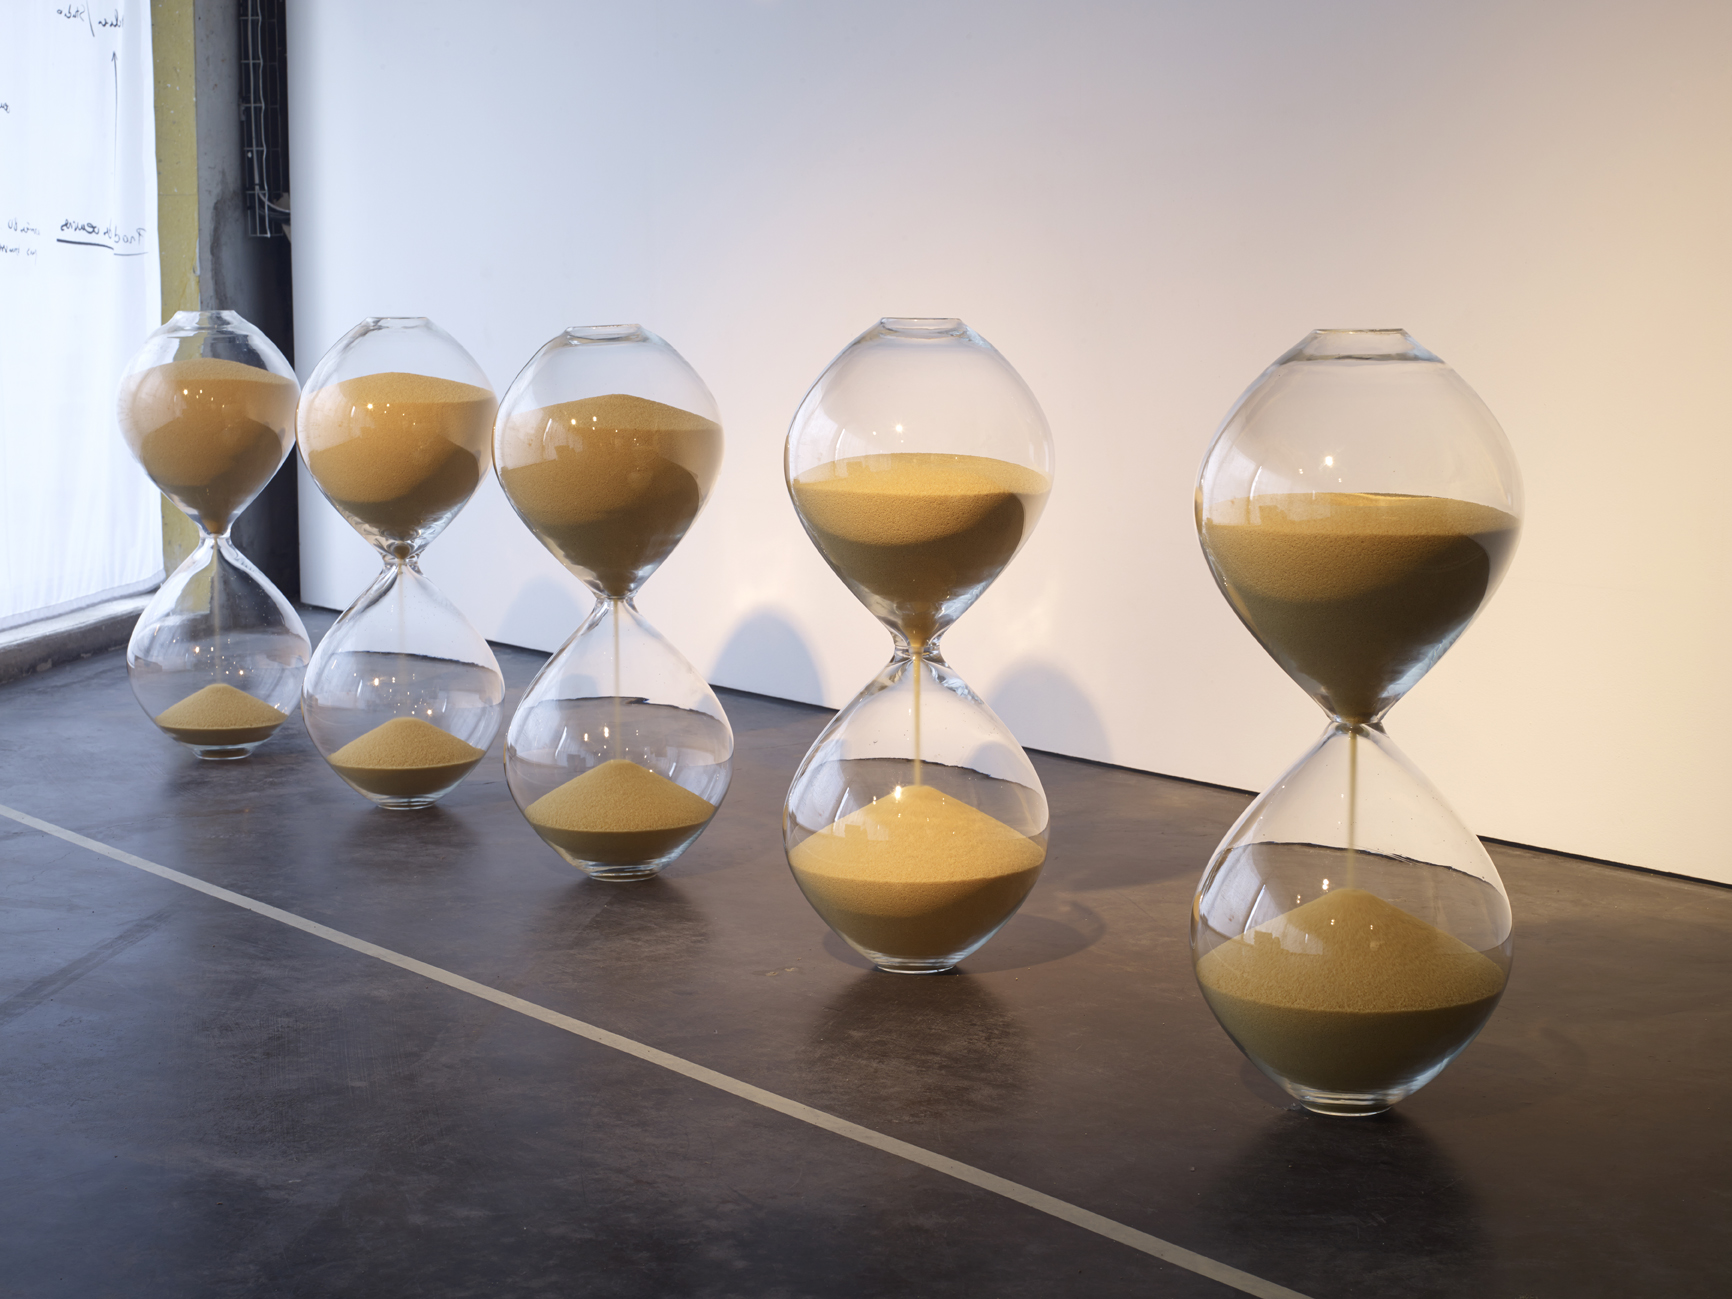 Mehdi-Georges Lahlou,  The Hourglasses, mold-blown glass, couscous 73 x 30 x 30 cm, 2015 - Courtesy the artist and Rabouan Moussion Gallery Paris